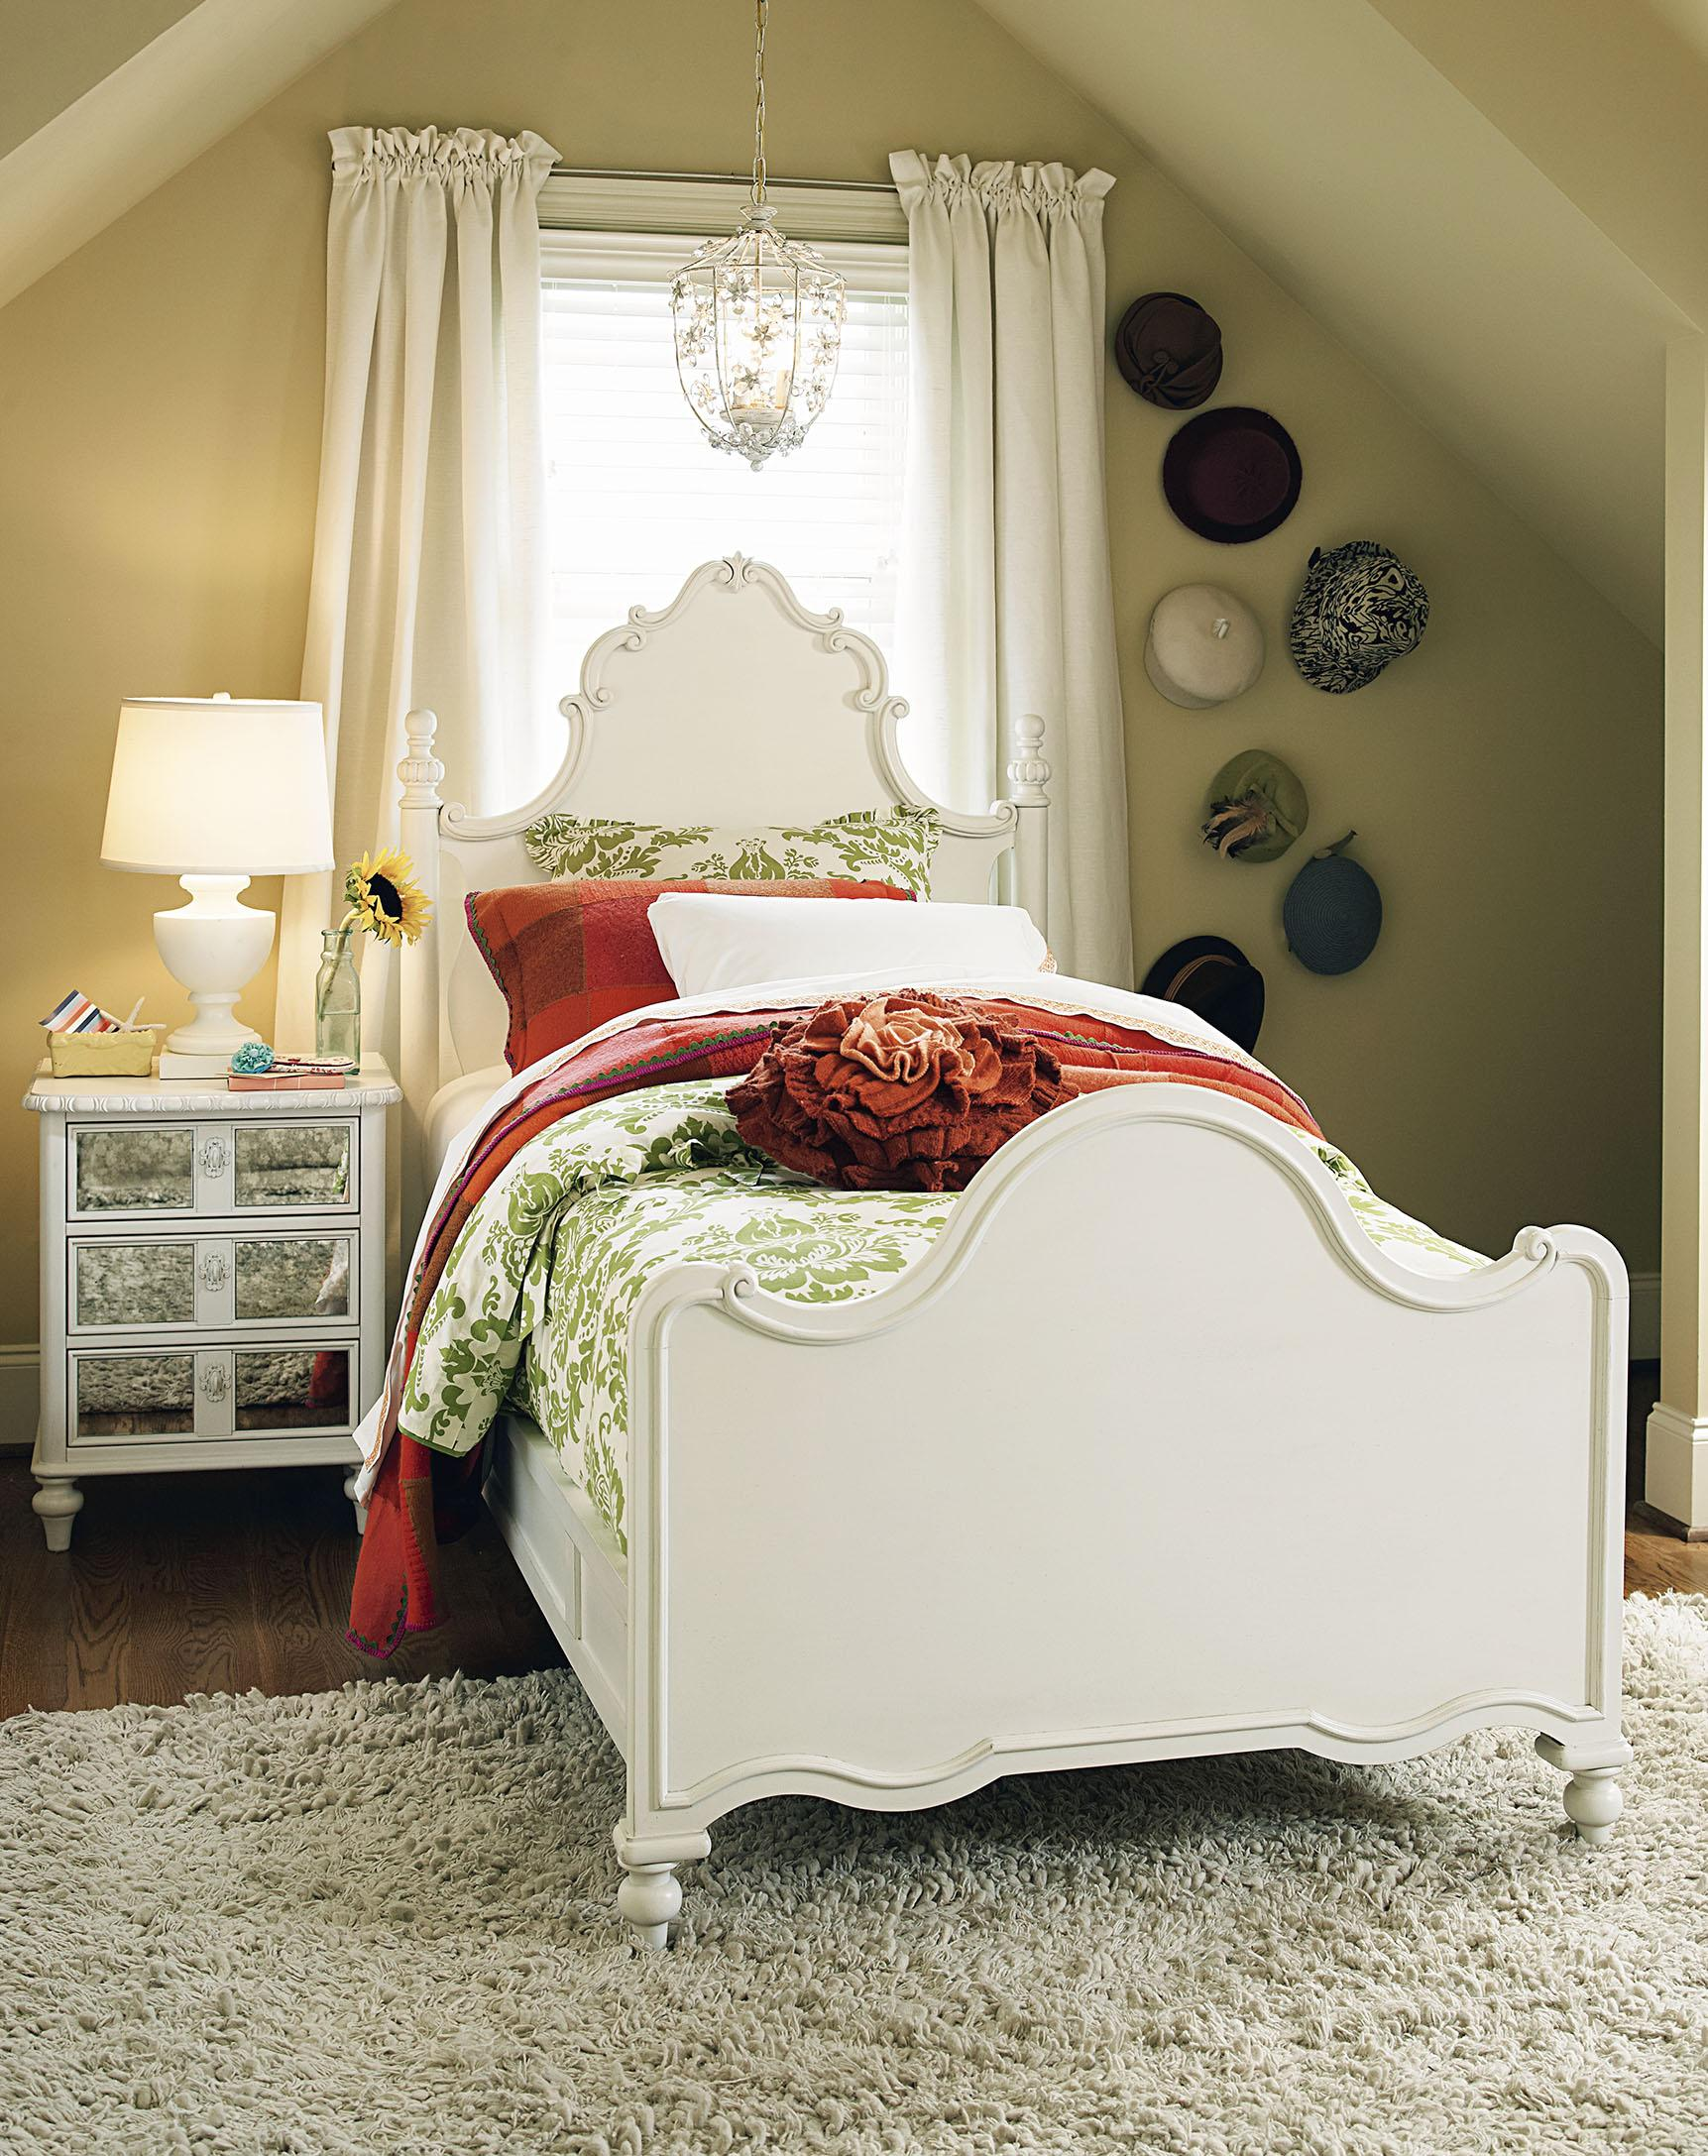 Smartstuff Bellamy Full Bellamy's Bed Bedroom Group - Item Number: 330A F Bedroom Group 5